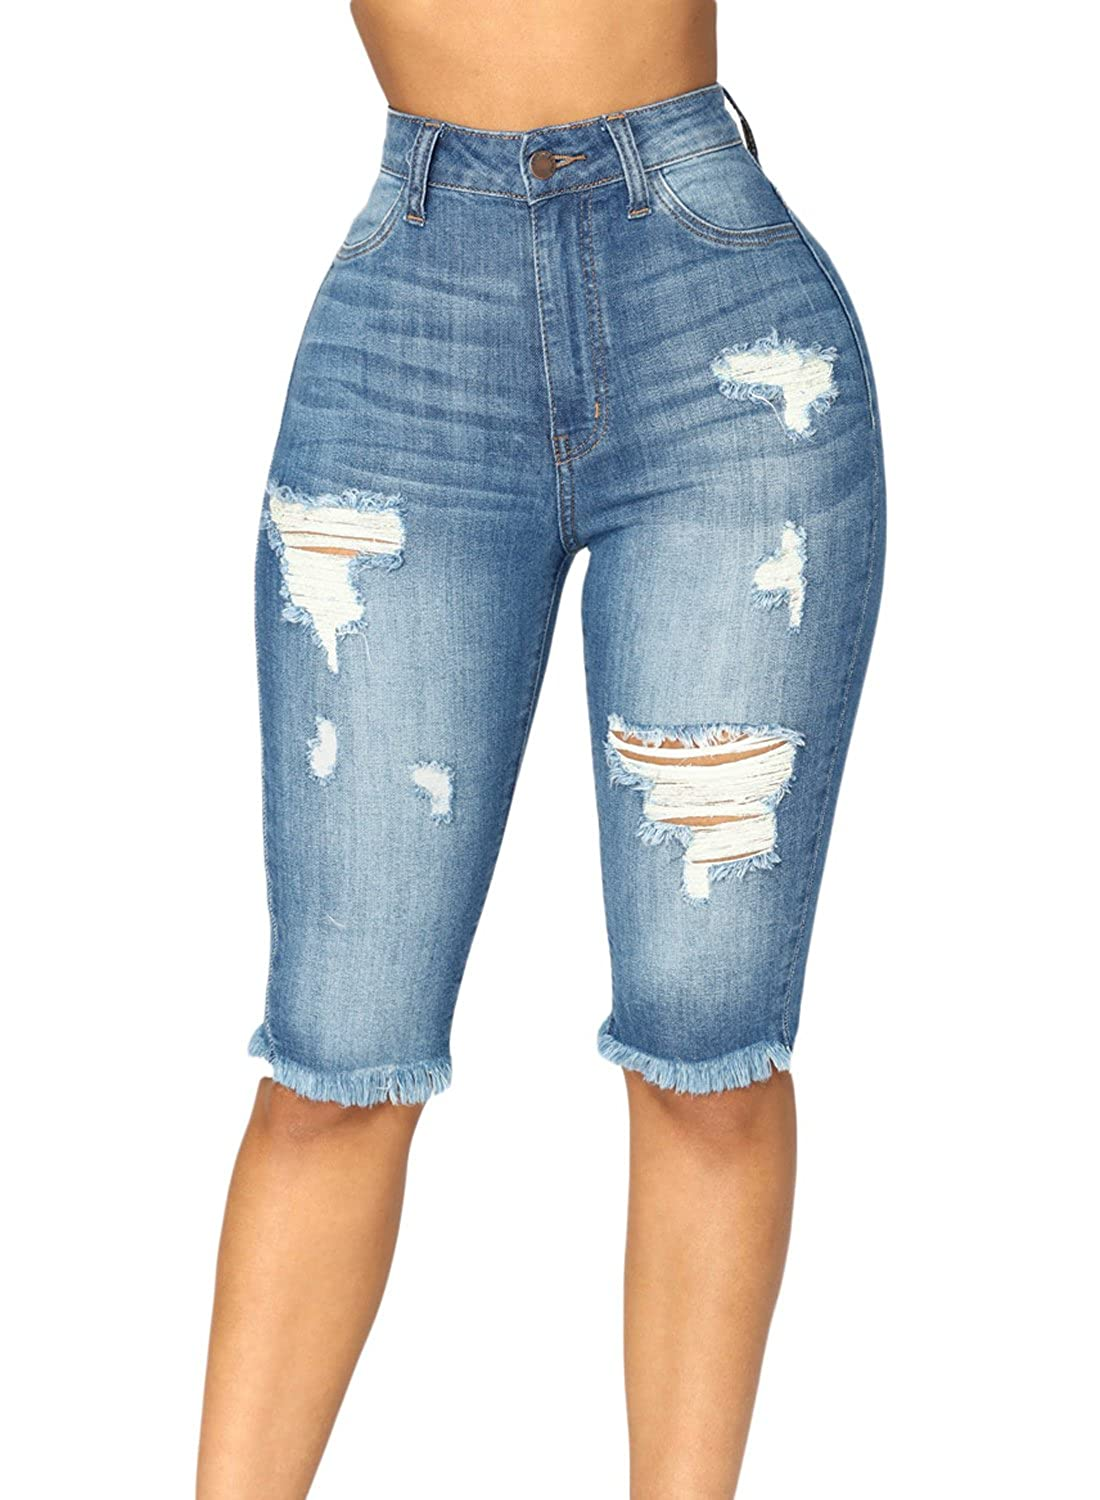 Azokoe Womens Summer Casual Denim Ripped Destroyed Bermuda Shorts